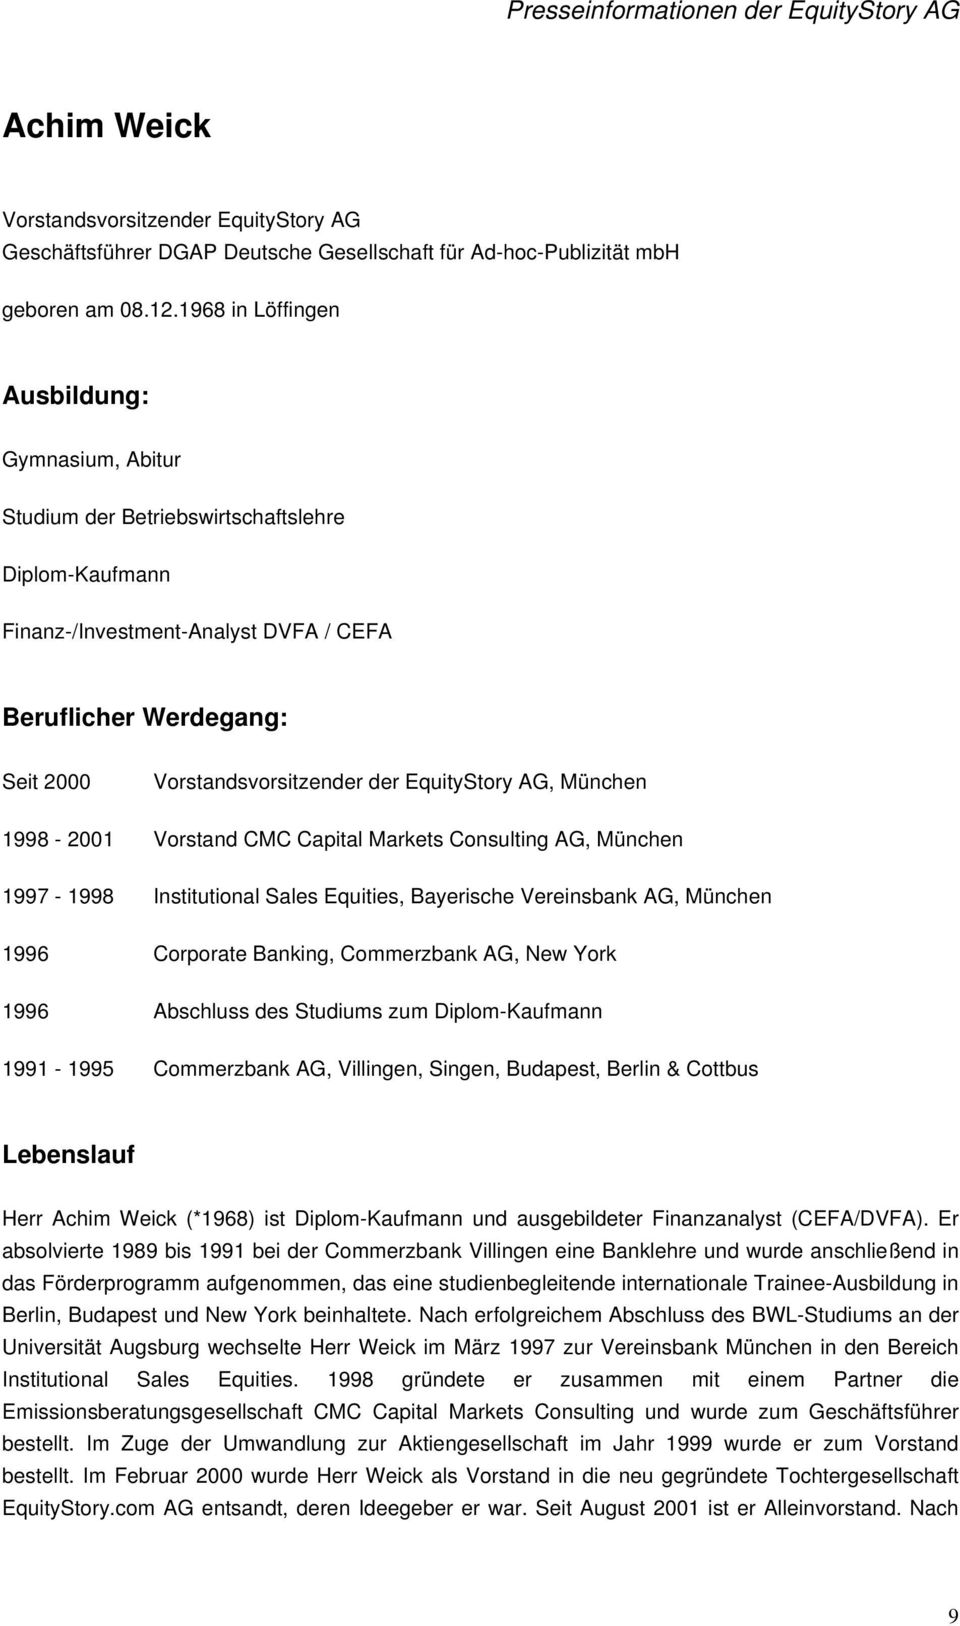 EquityStory AG, München 1998-2001 Vorstand CMC Capital Markets Consulting AG, München 1997-1998 Institutional Sales Equities, Bayerische Vereinsbank AG, München 1996 Corporate Banking, Commerzbank